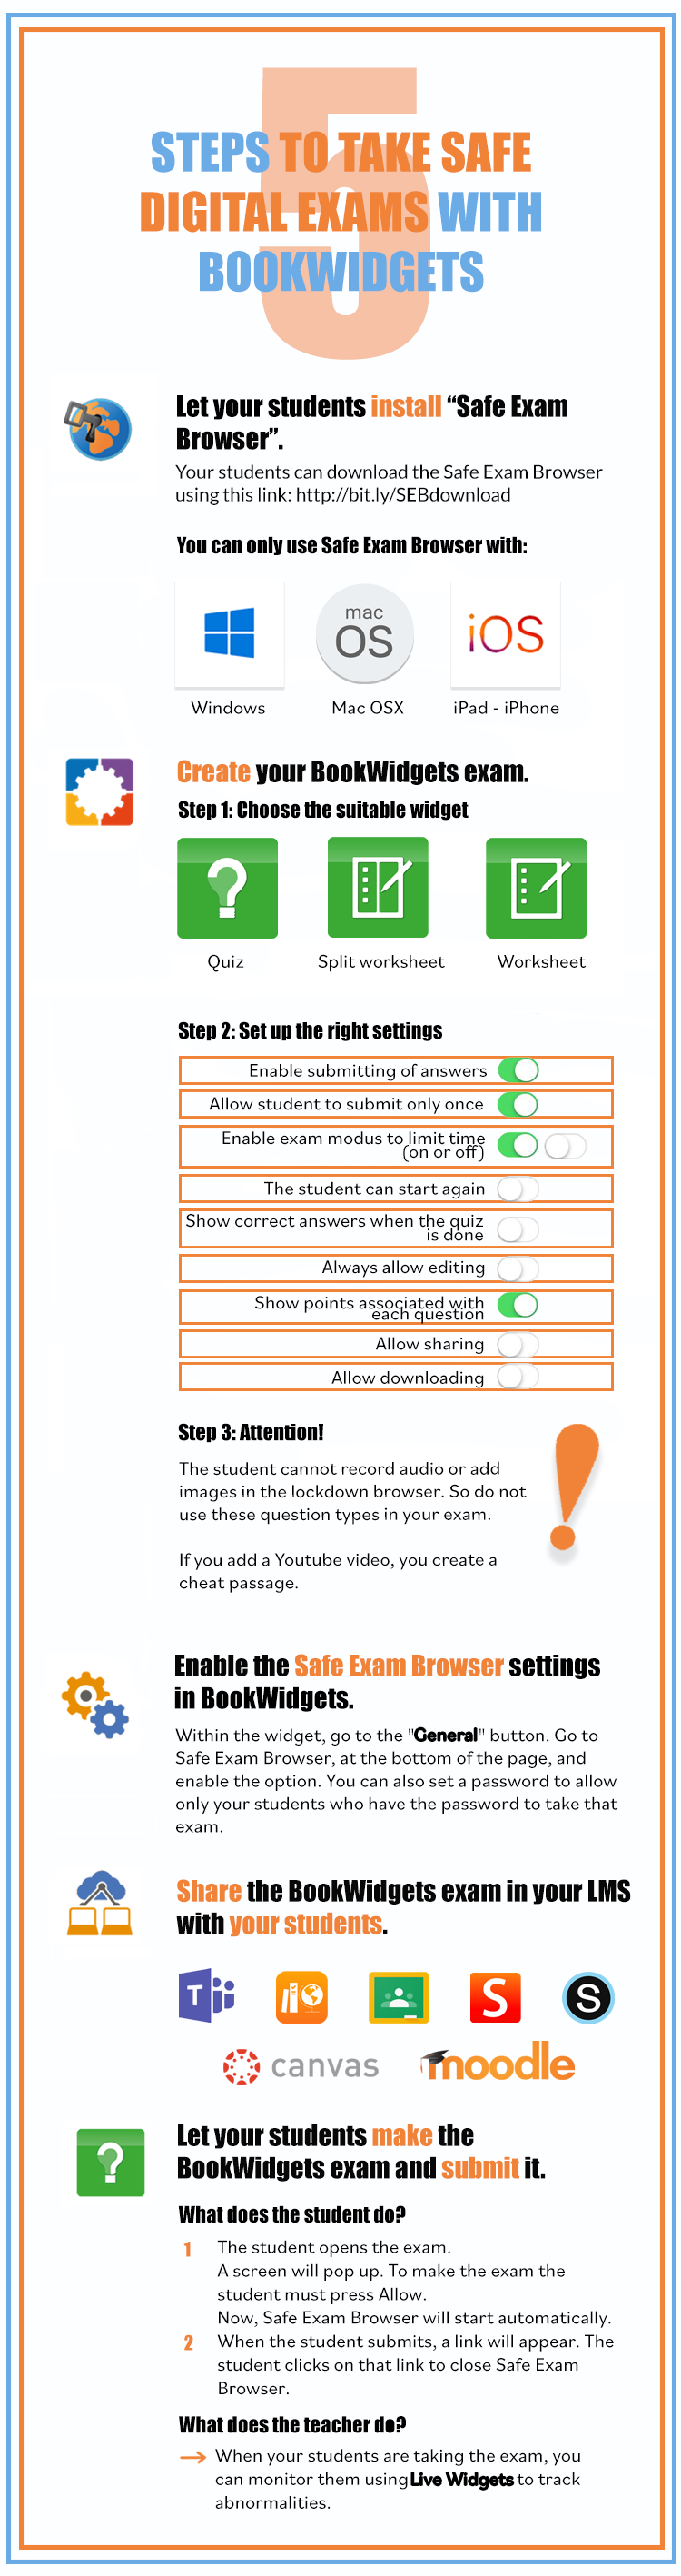 5 steps to take safe digital exams with BookWidgets